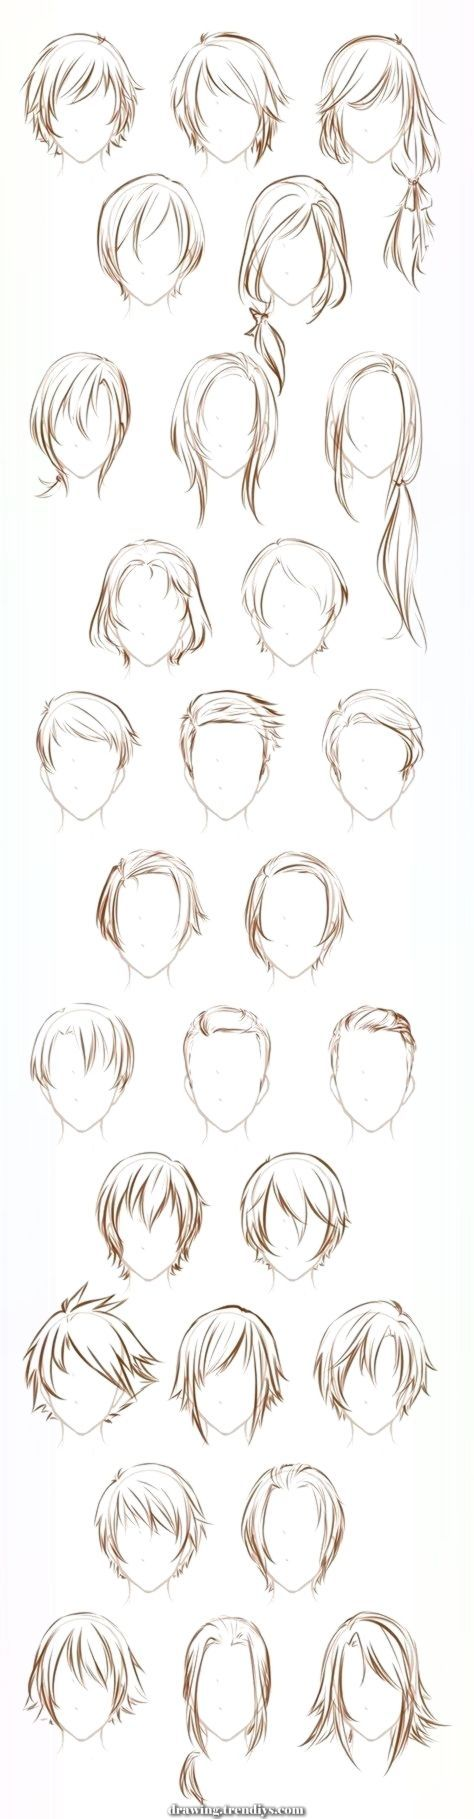 Unique And Creative The Hair Of The Artwork Of Drawing Allusive Tremendous Concepts Drawing Hair Tutorial How To Draw Hair Anime Hair